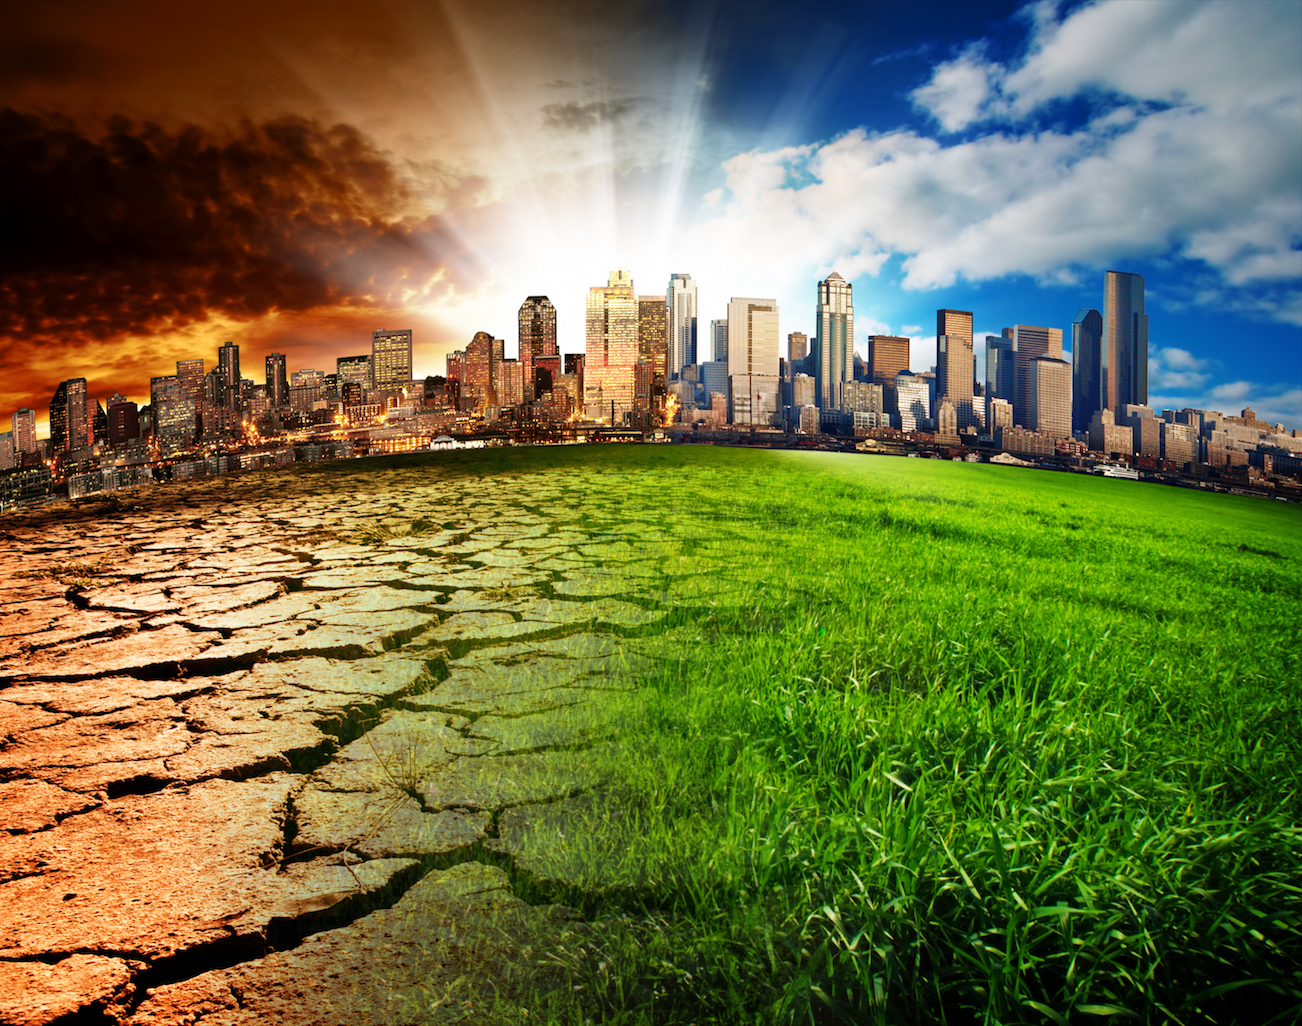 A study revealed that climate change has the potential to reduce the world's financial assets by 2.5 trillion dollars